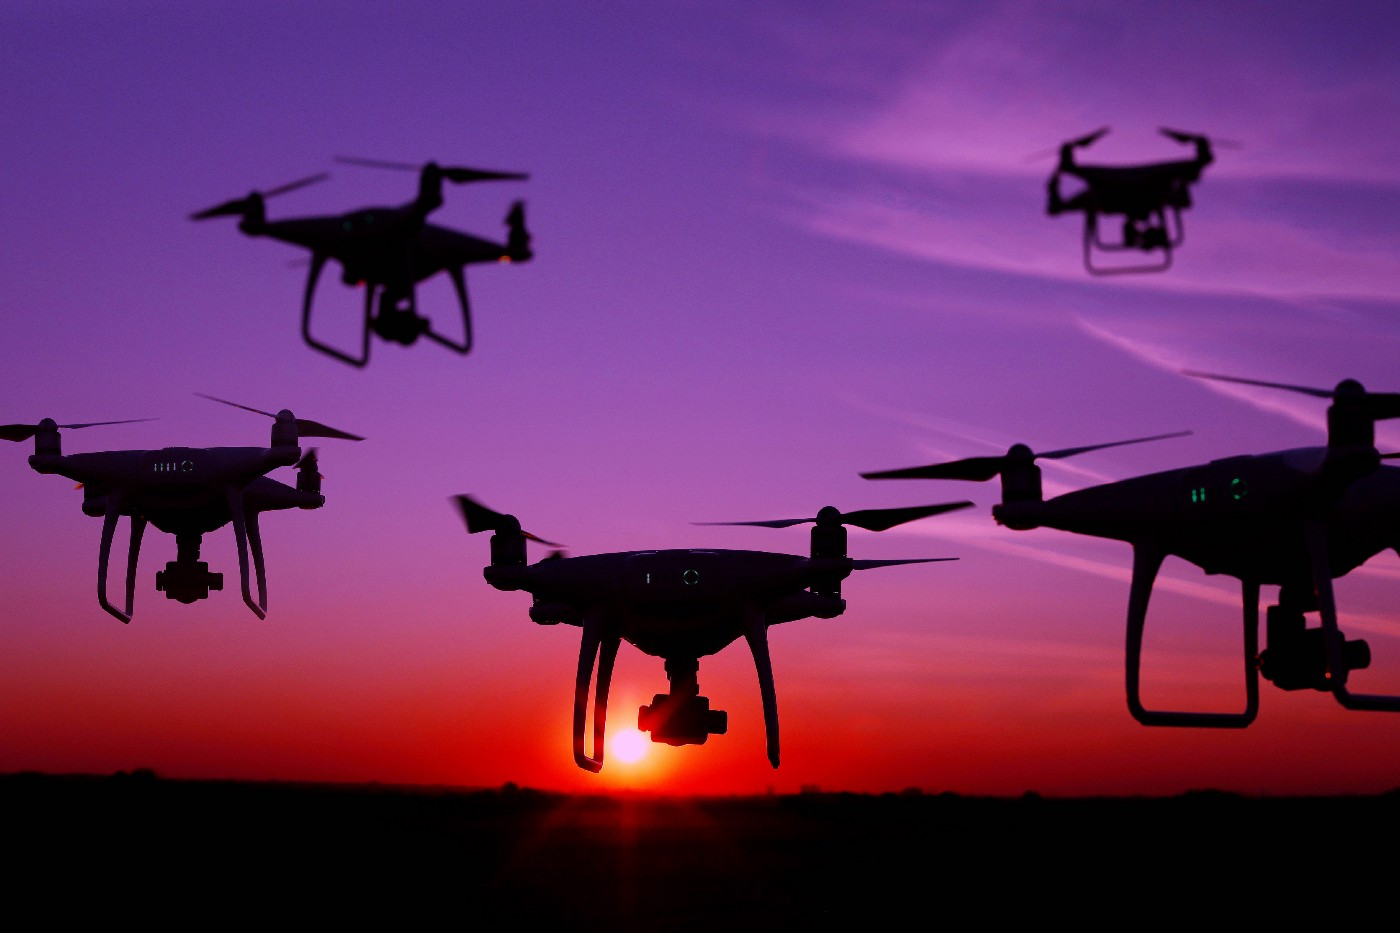 Five drone silhouettes in the sky at sunset